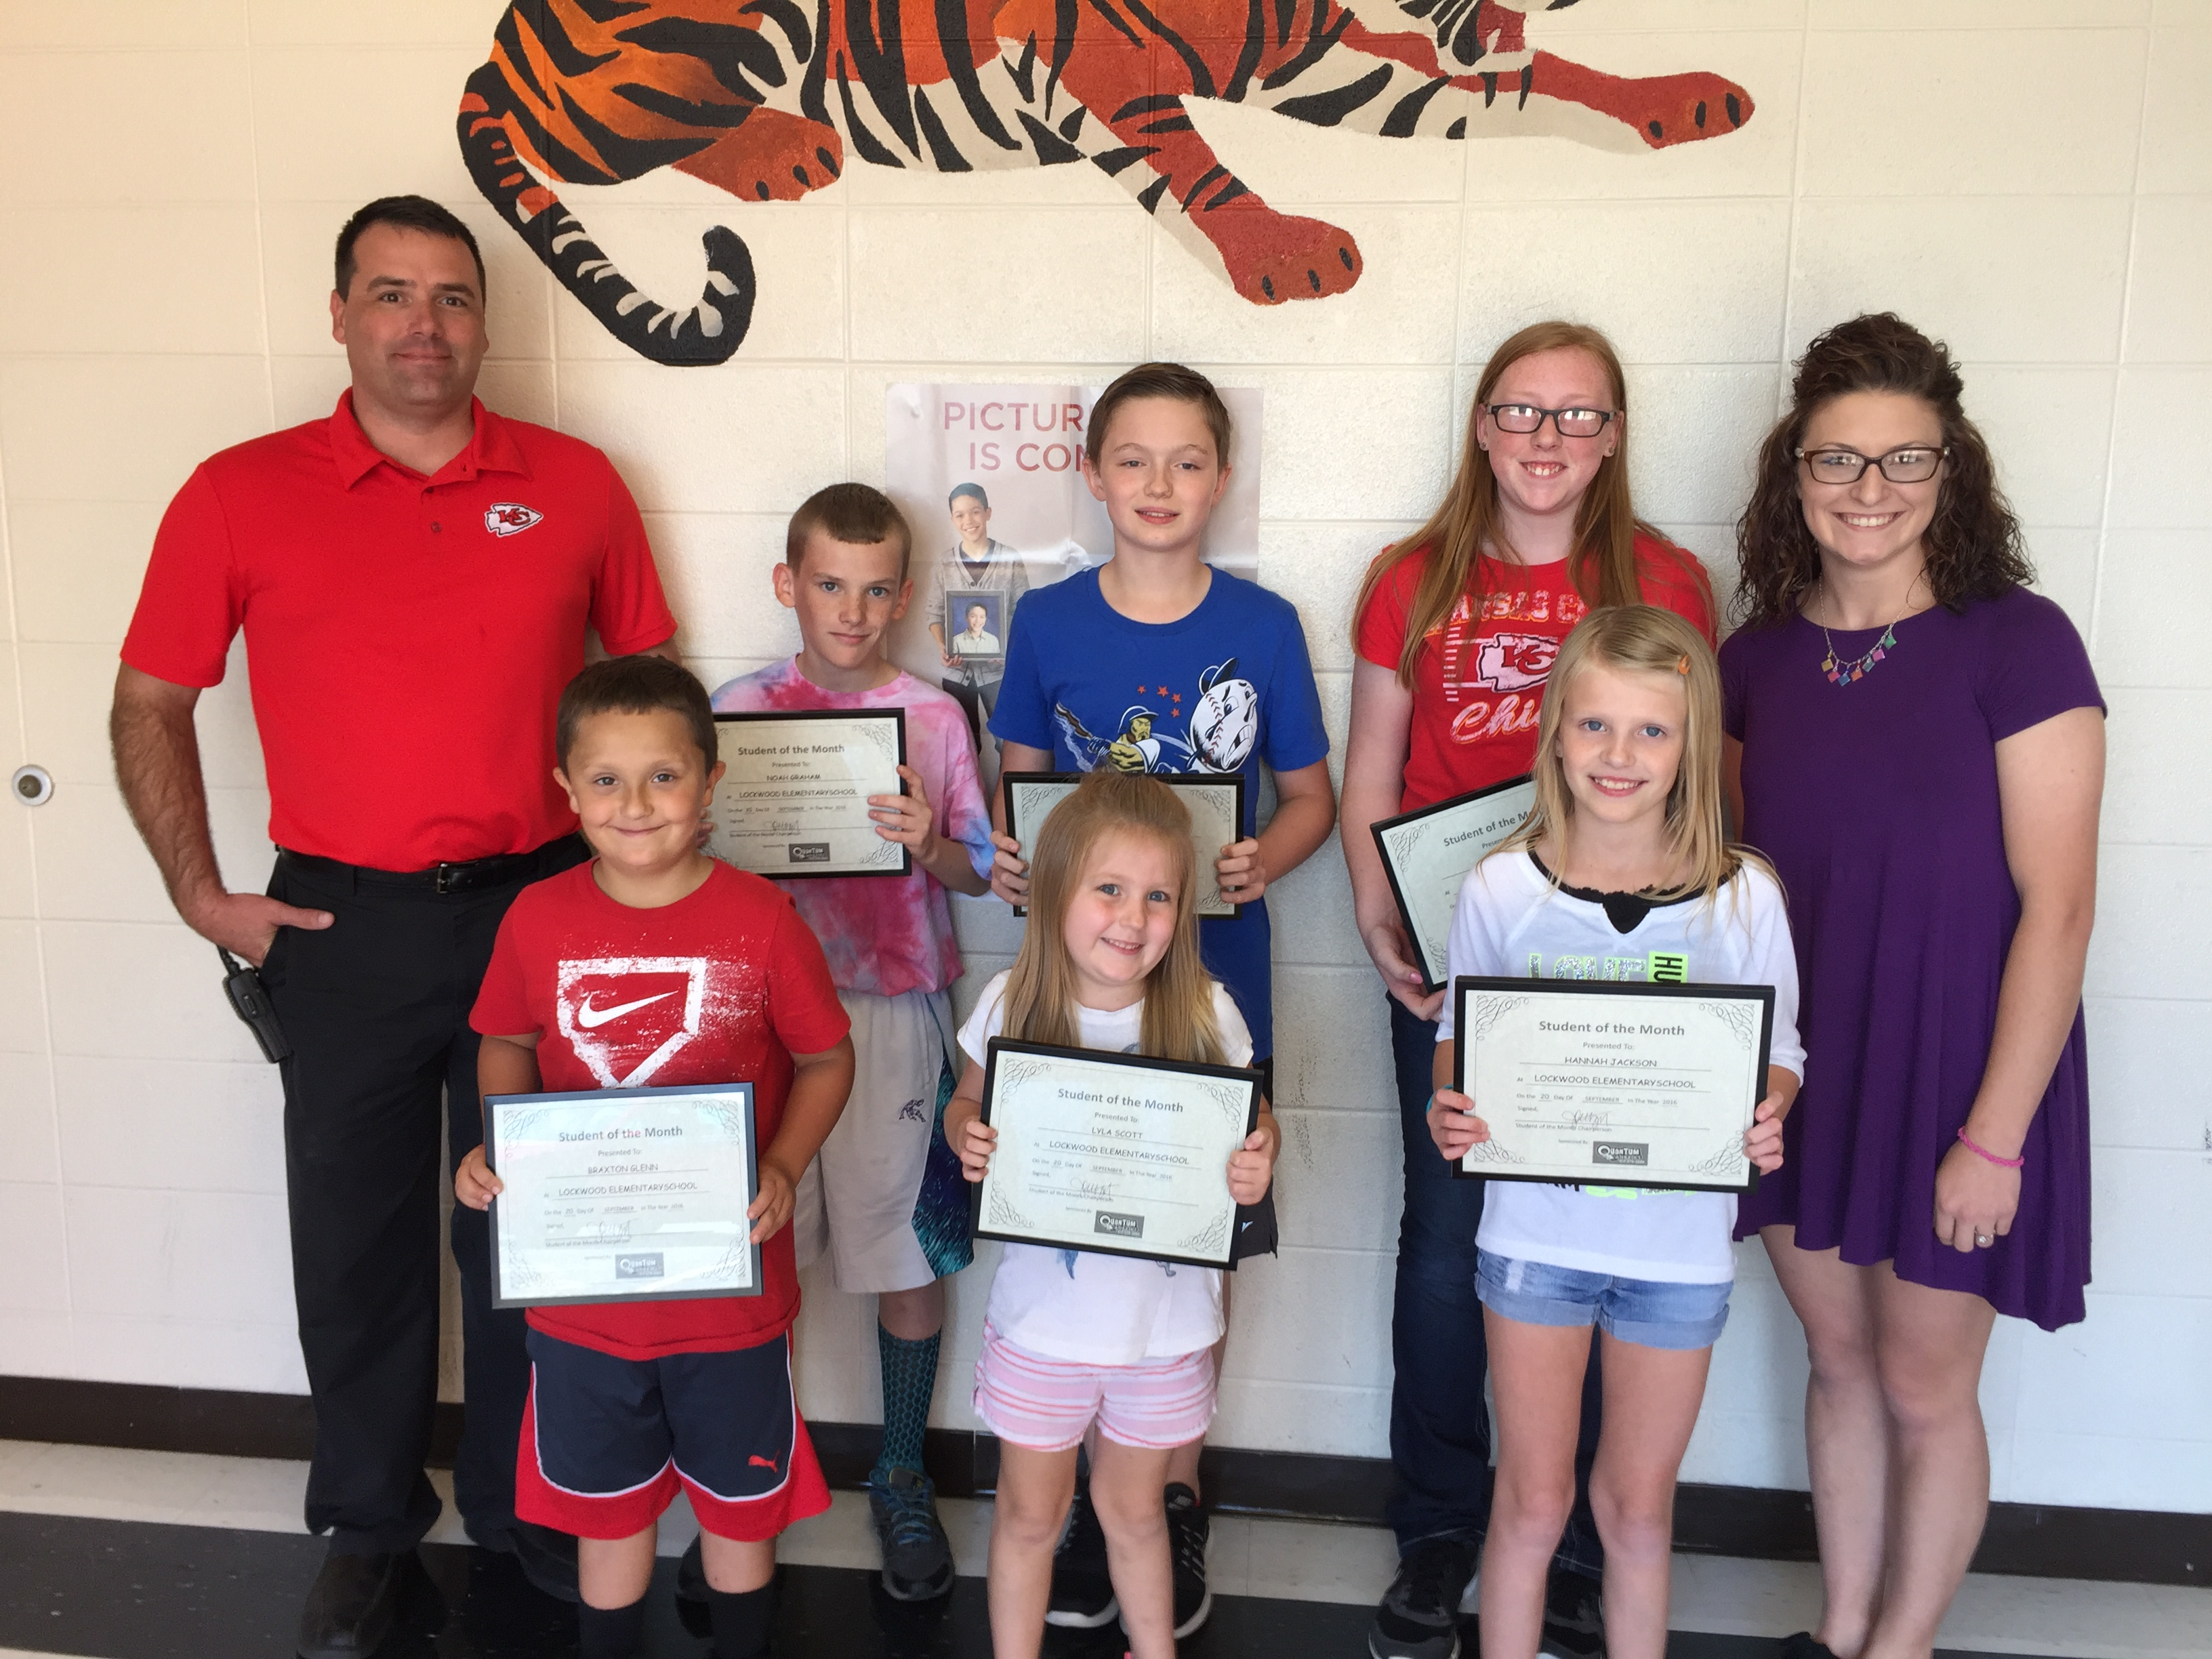 LEMS Students of the Month